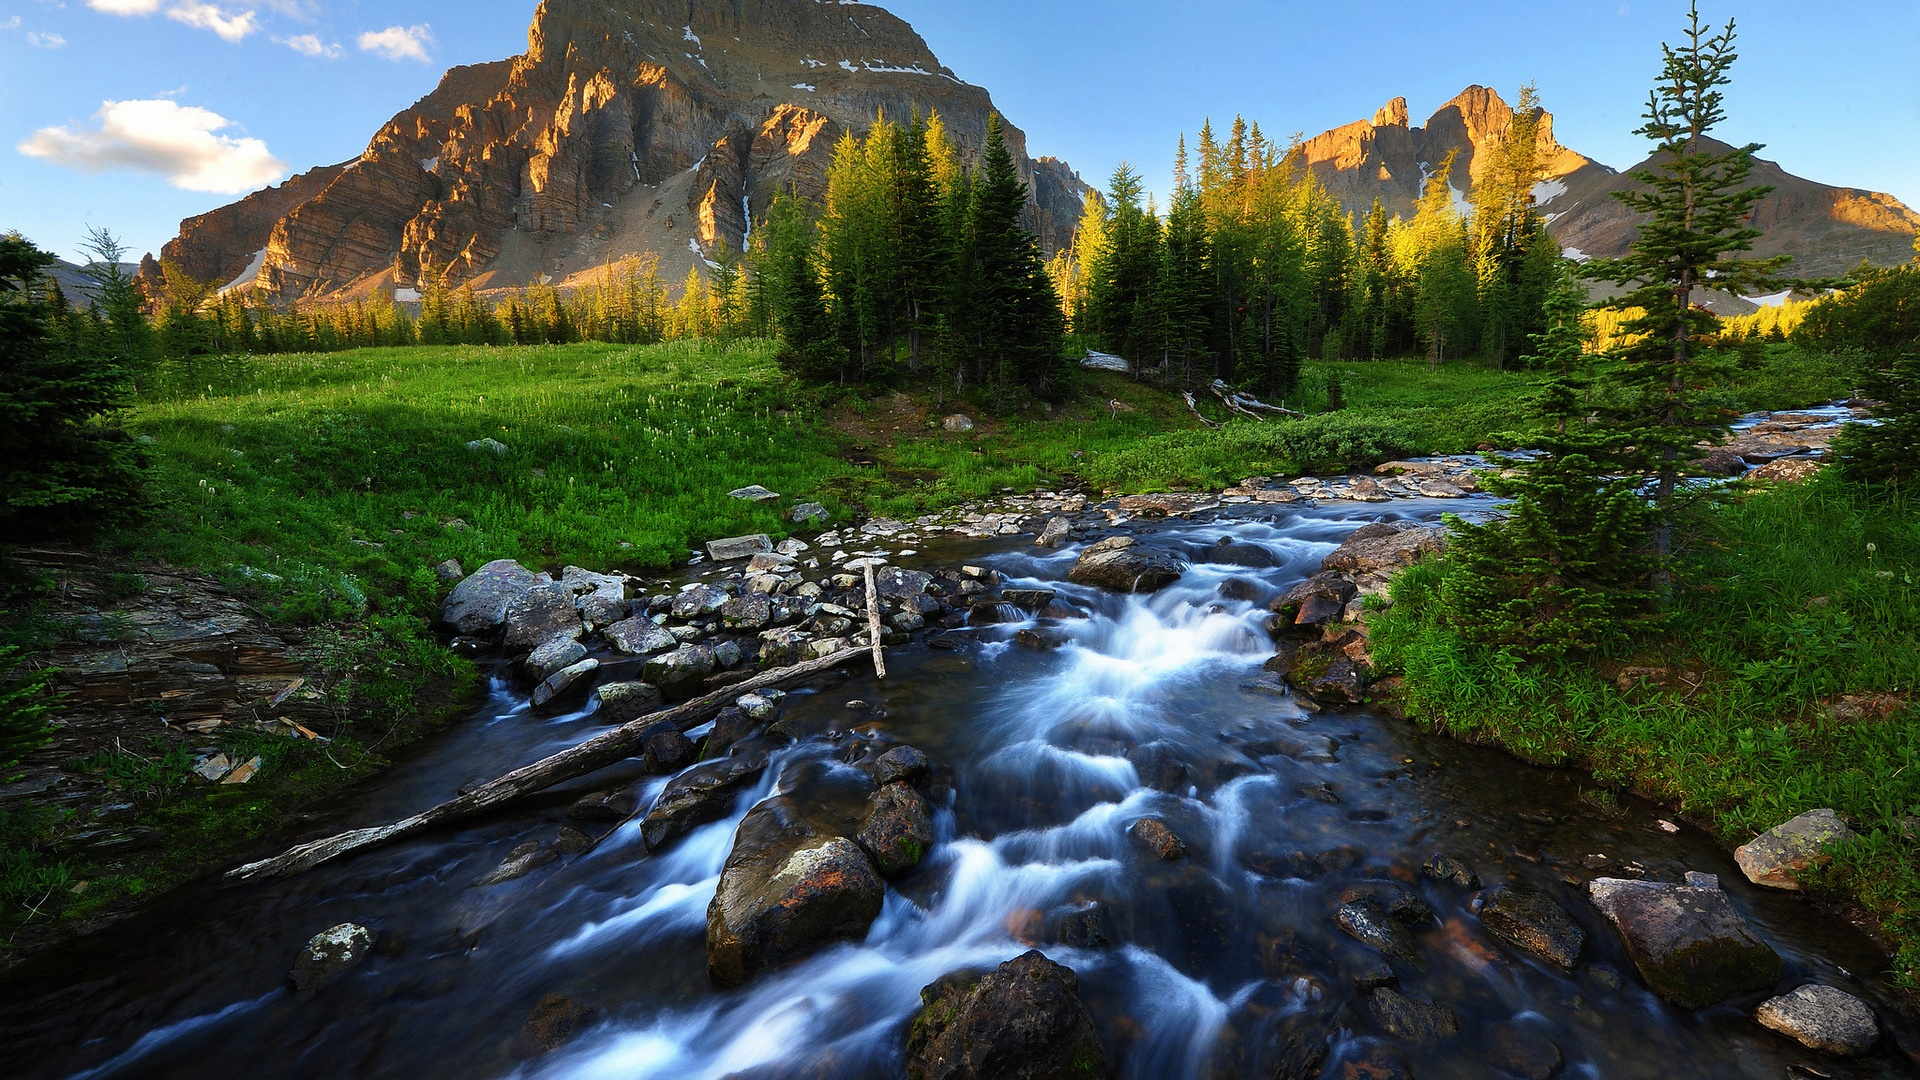 Wallpaper hd river flows in you noten - cab3